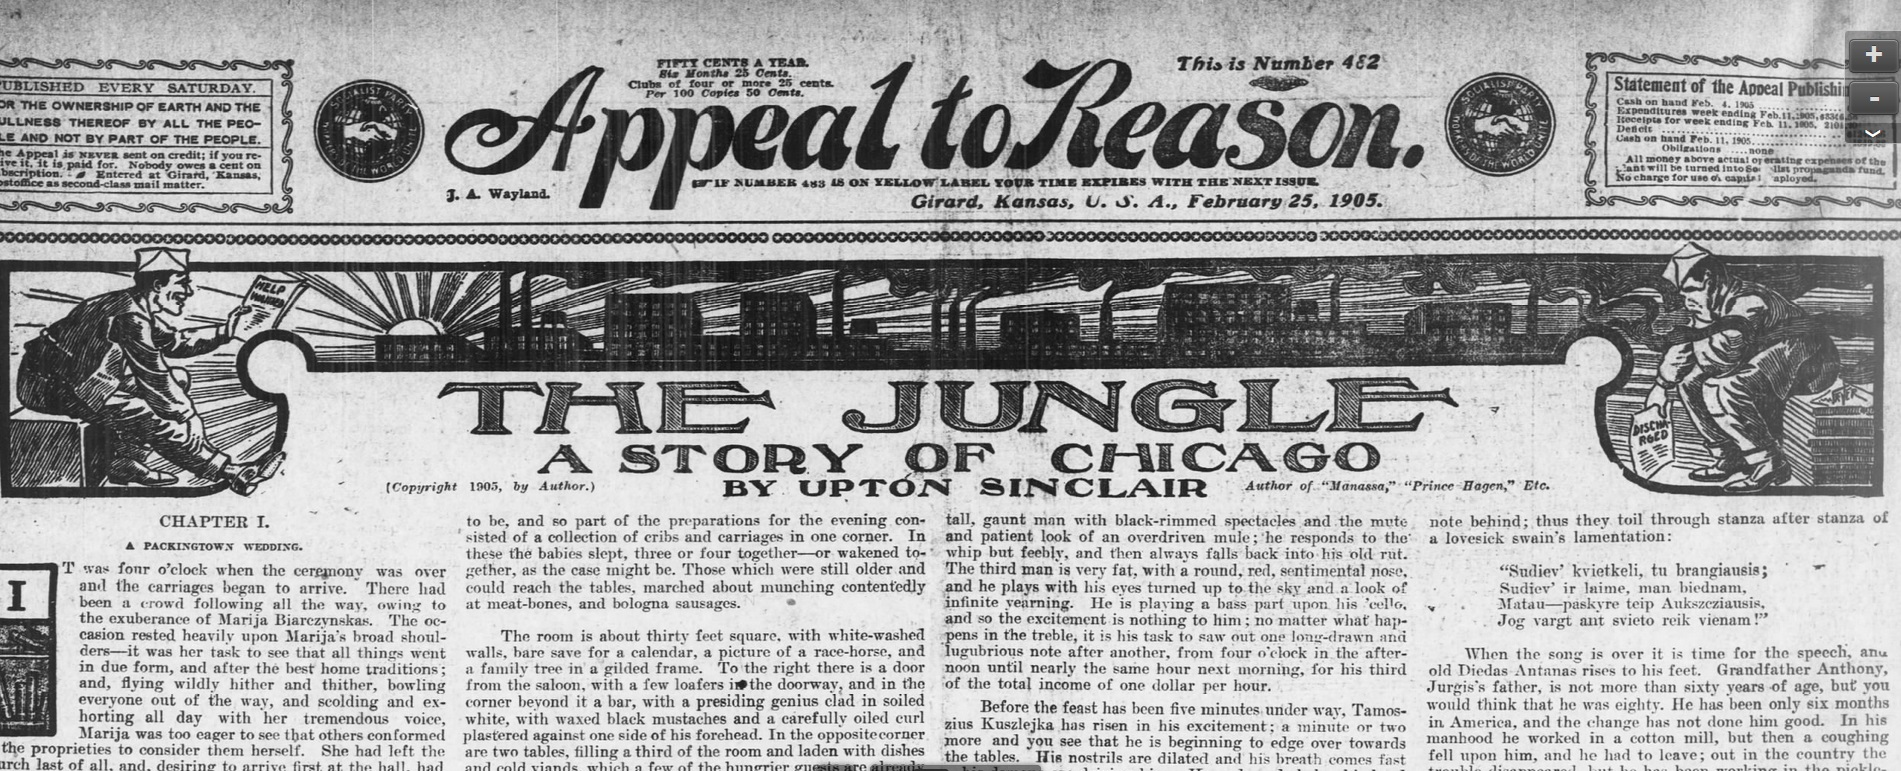 The Jungle Debuts in Appeal to Reason